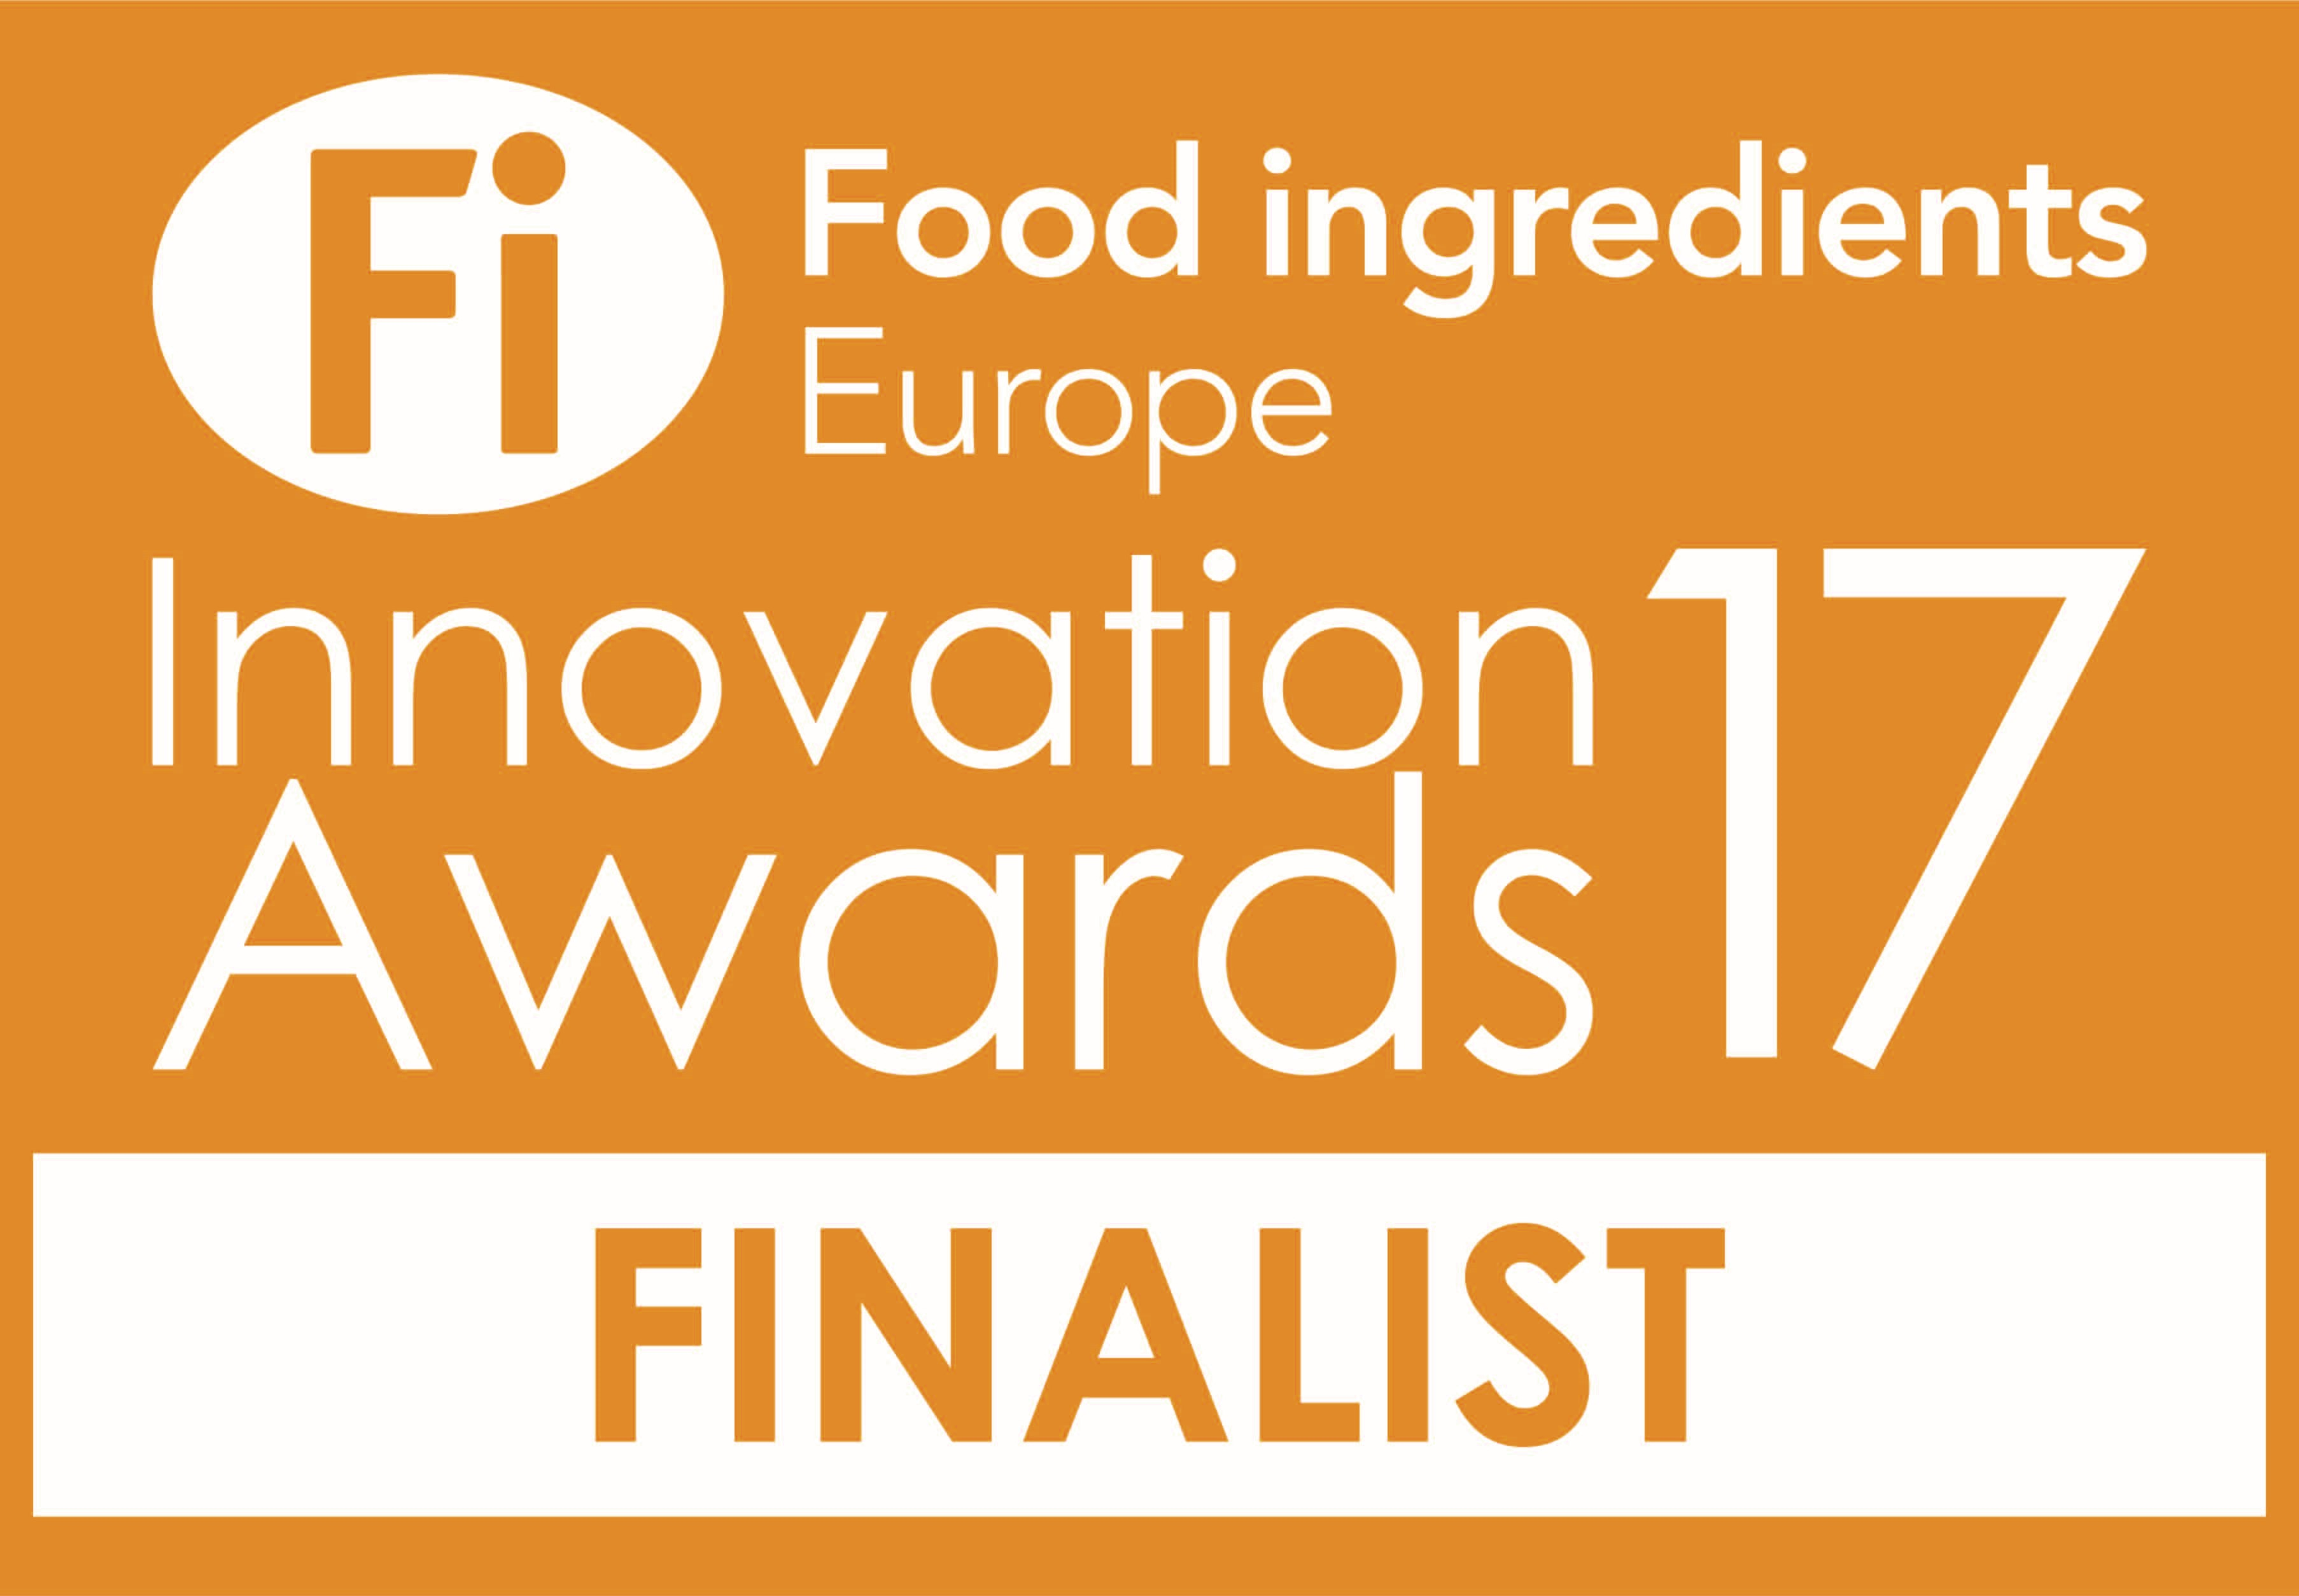 fi-europe-innovatinons-award